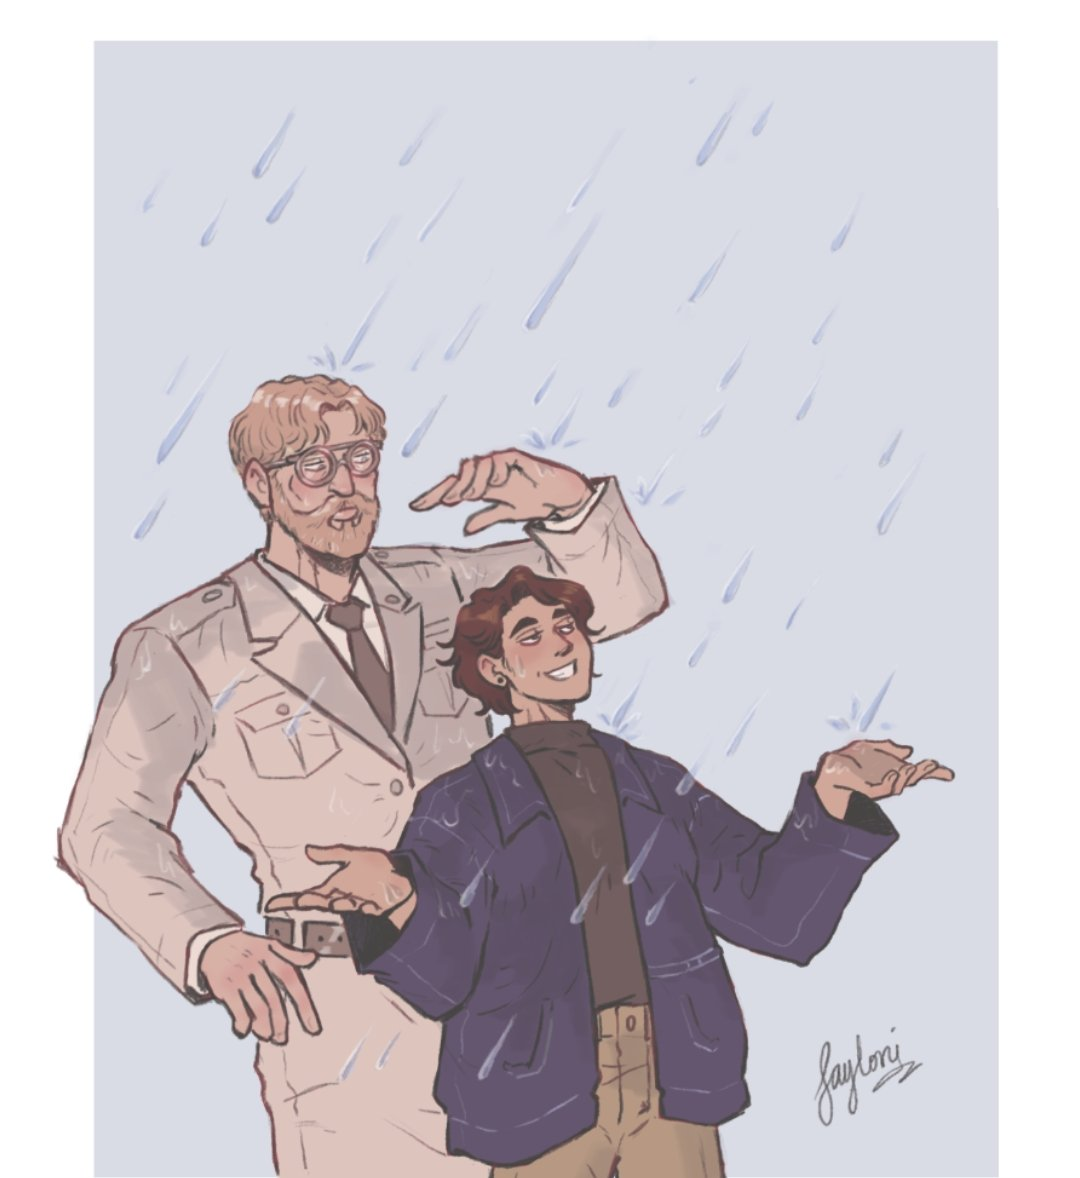 Did a commission for tumblr user globelily of their OC and Zeke. #Commission #commissionopen #AttackOnTitan #art #zekeJaeger #zekeyeager #ArtistOnTwitter